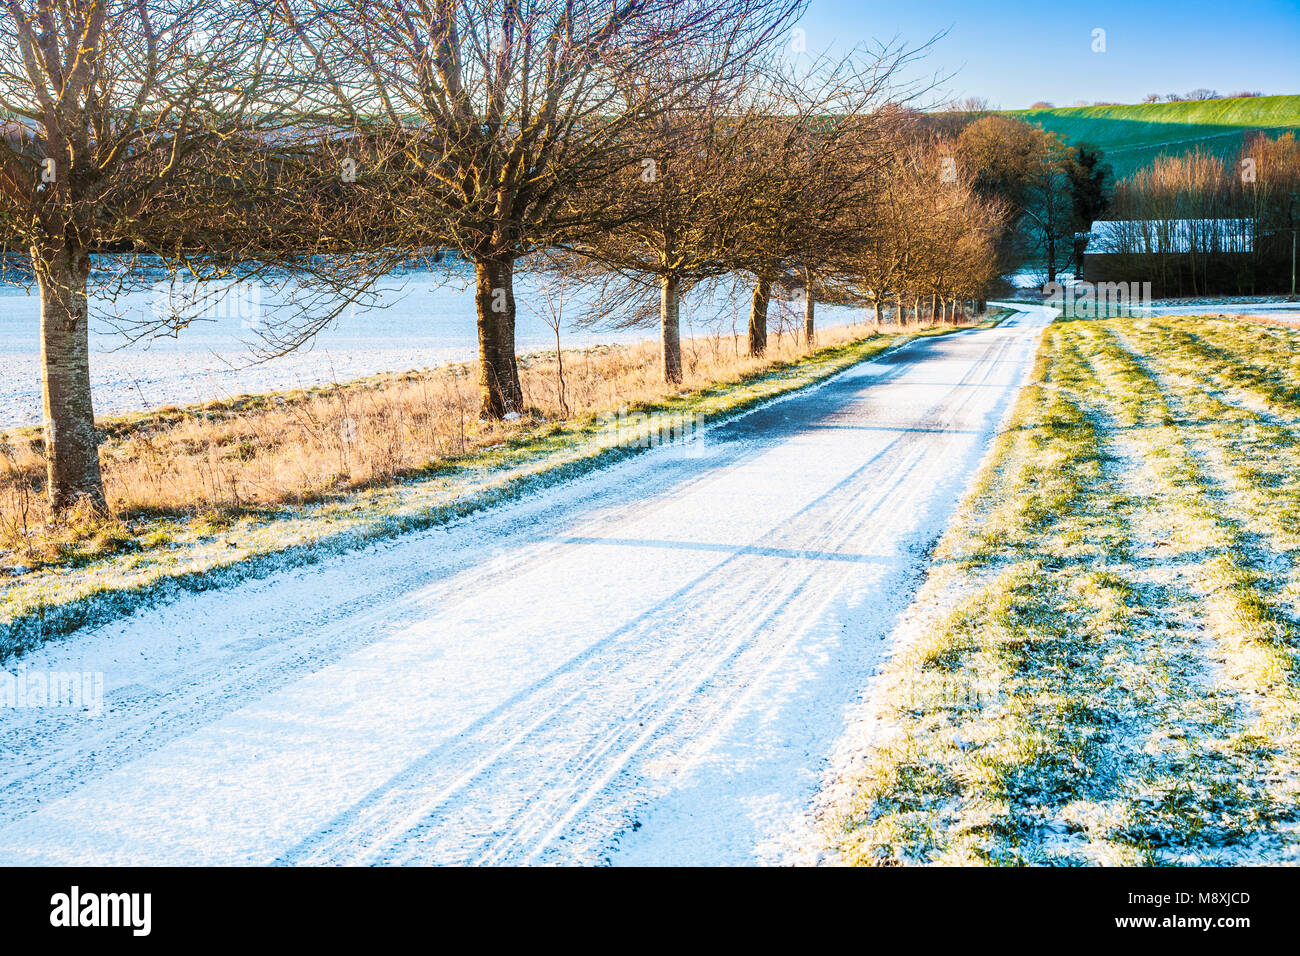 A small country lane on a frosty winter's morning on the Marlborough Downs. - Stock Image